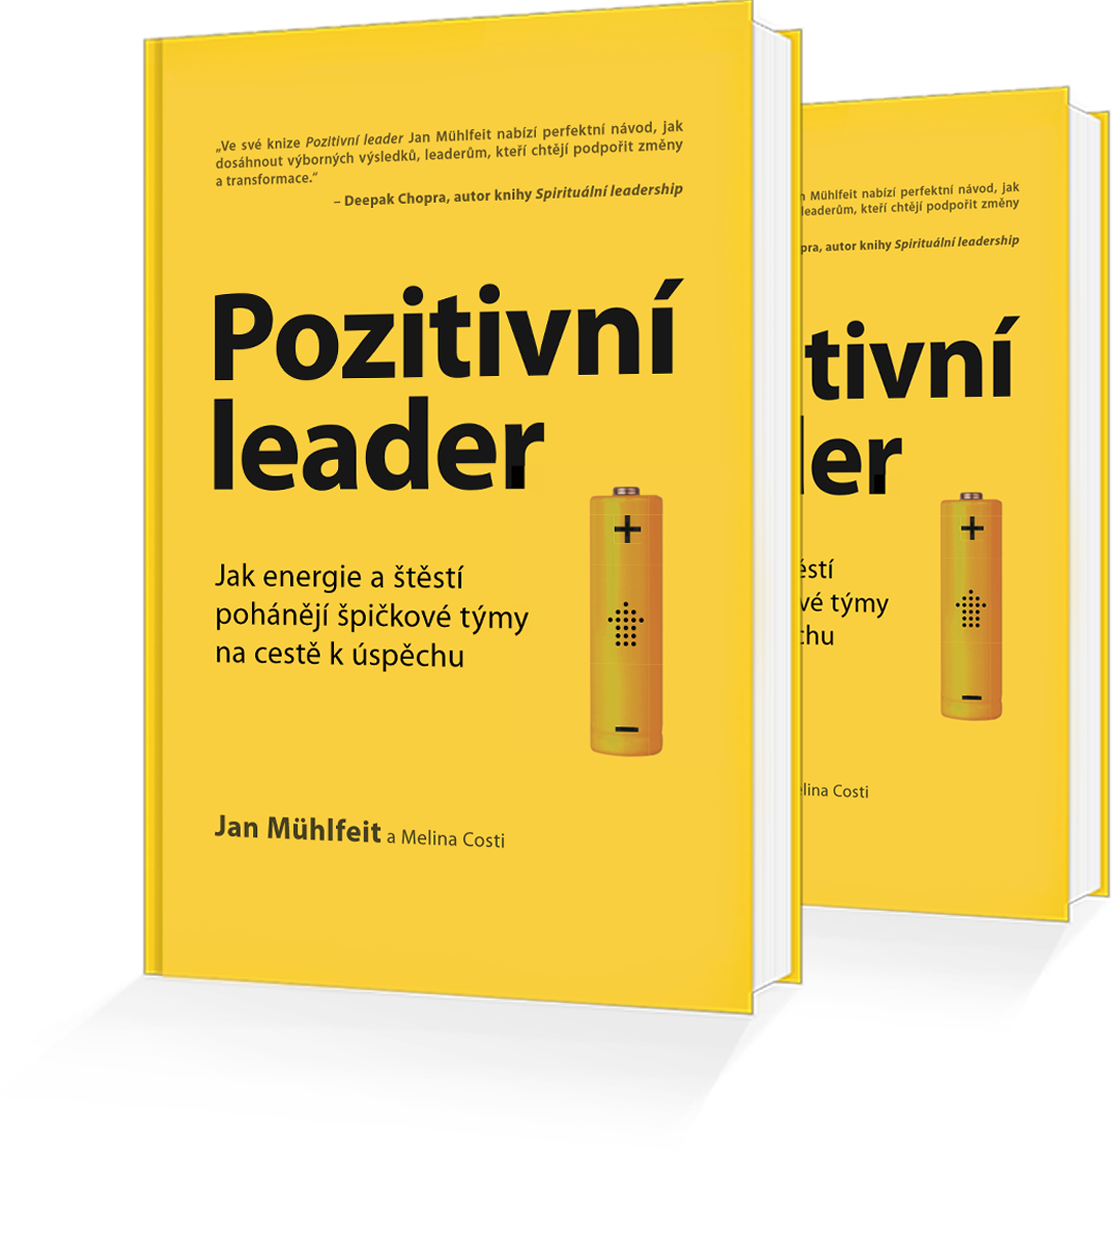 The positive leader book